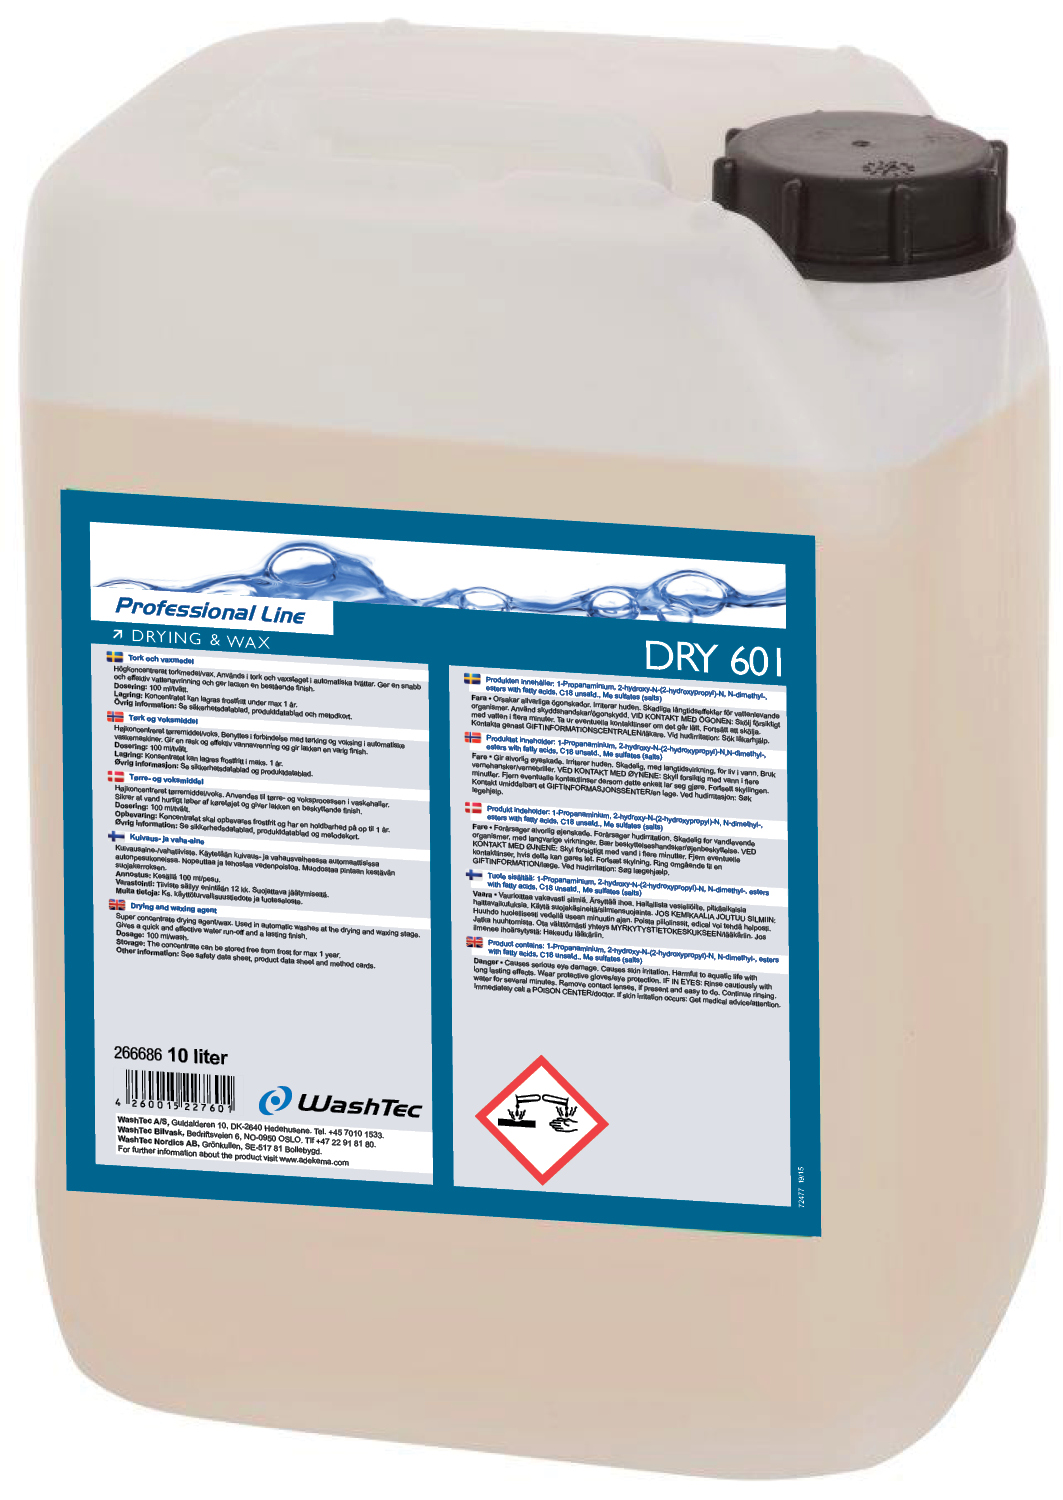 DRY 601 - Drying and Wax 10 L